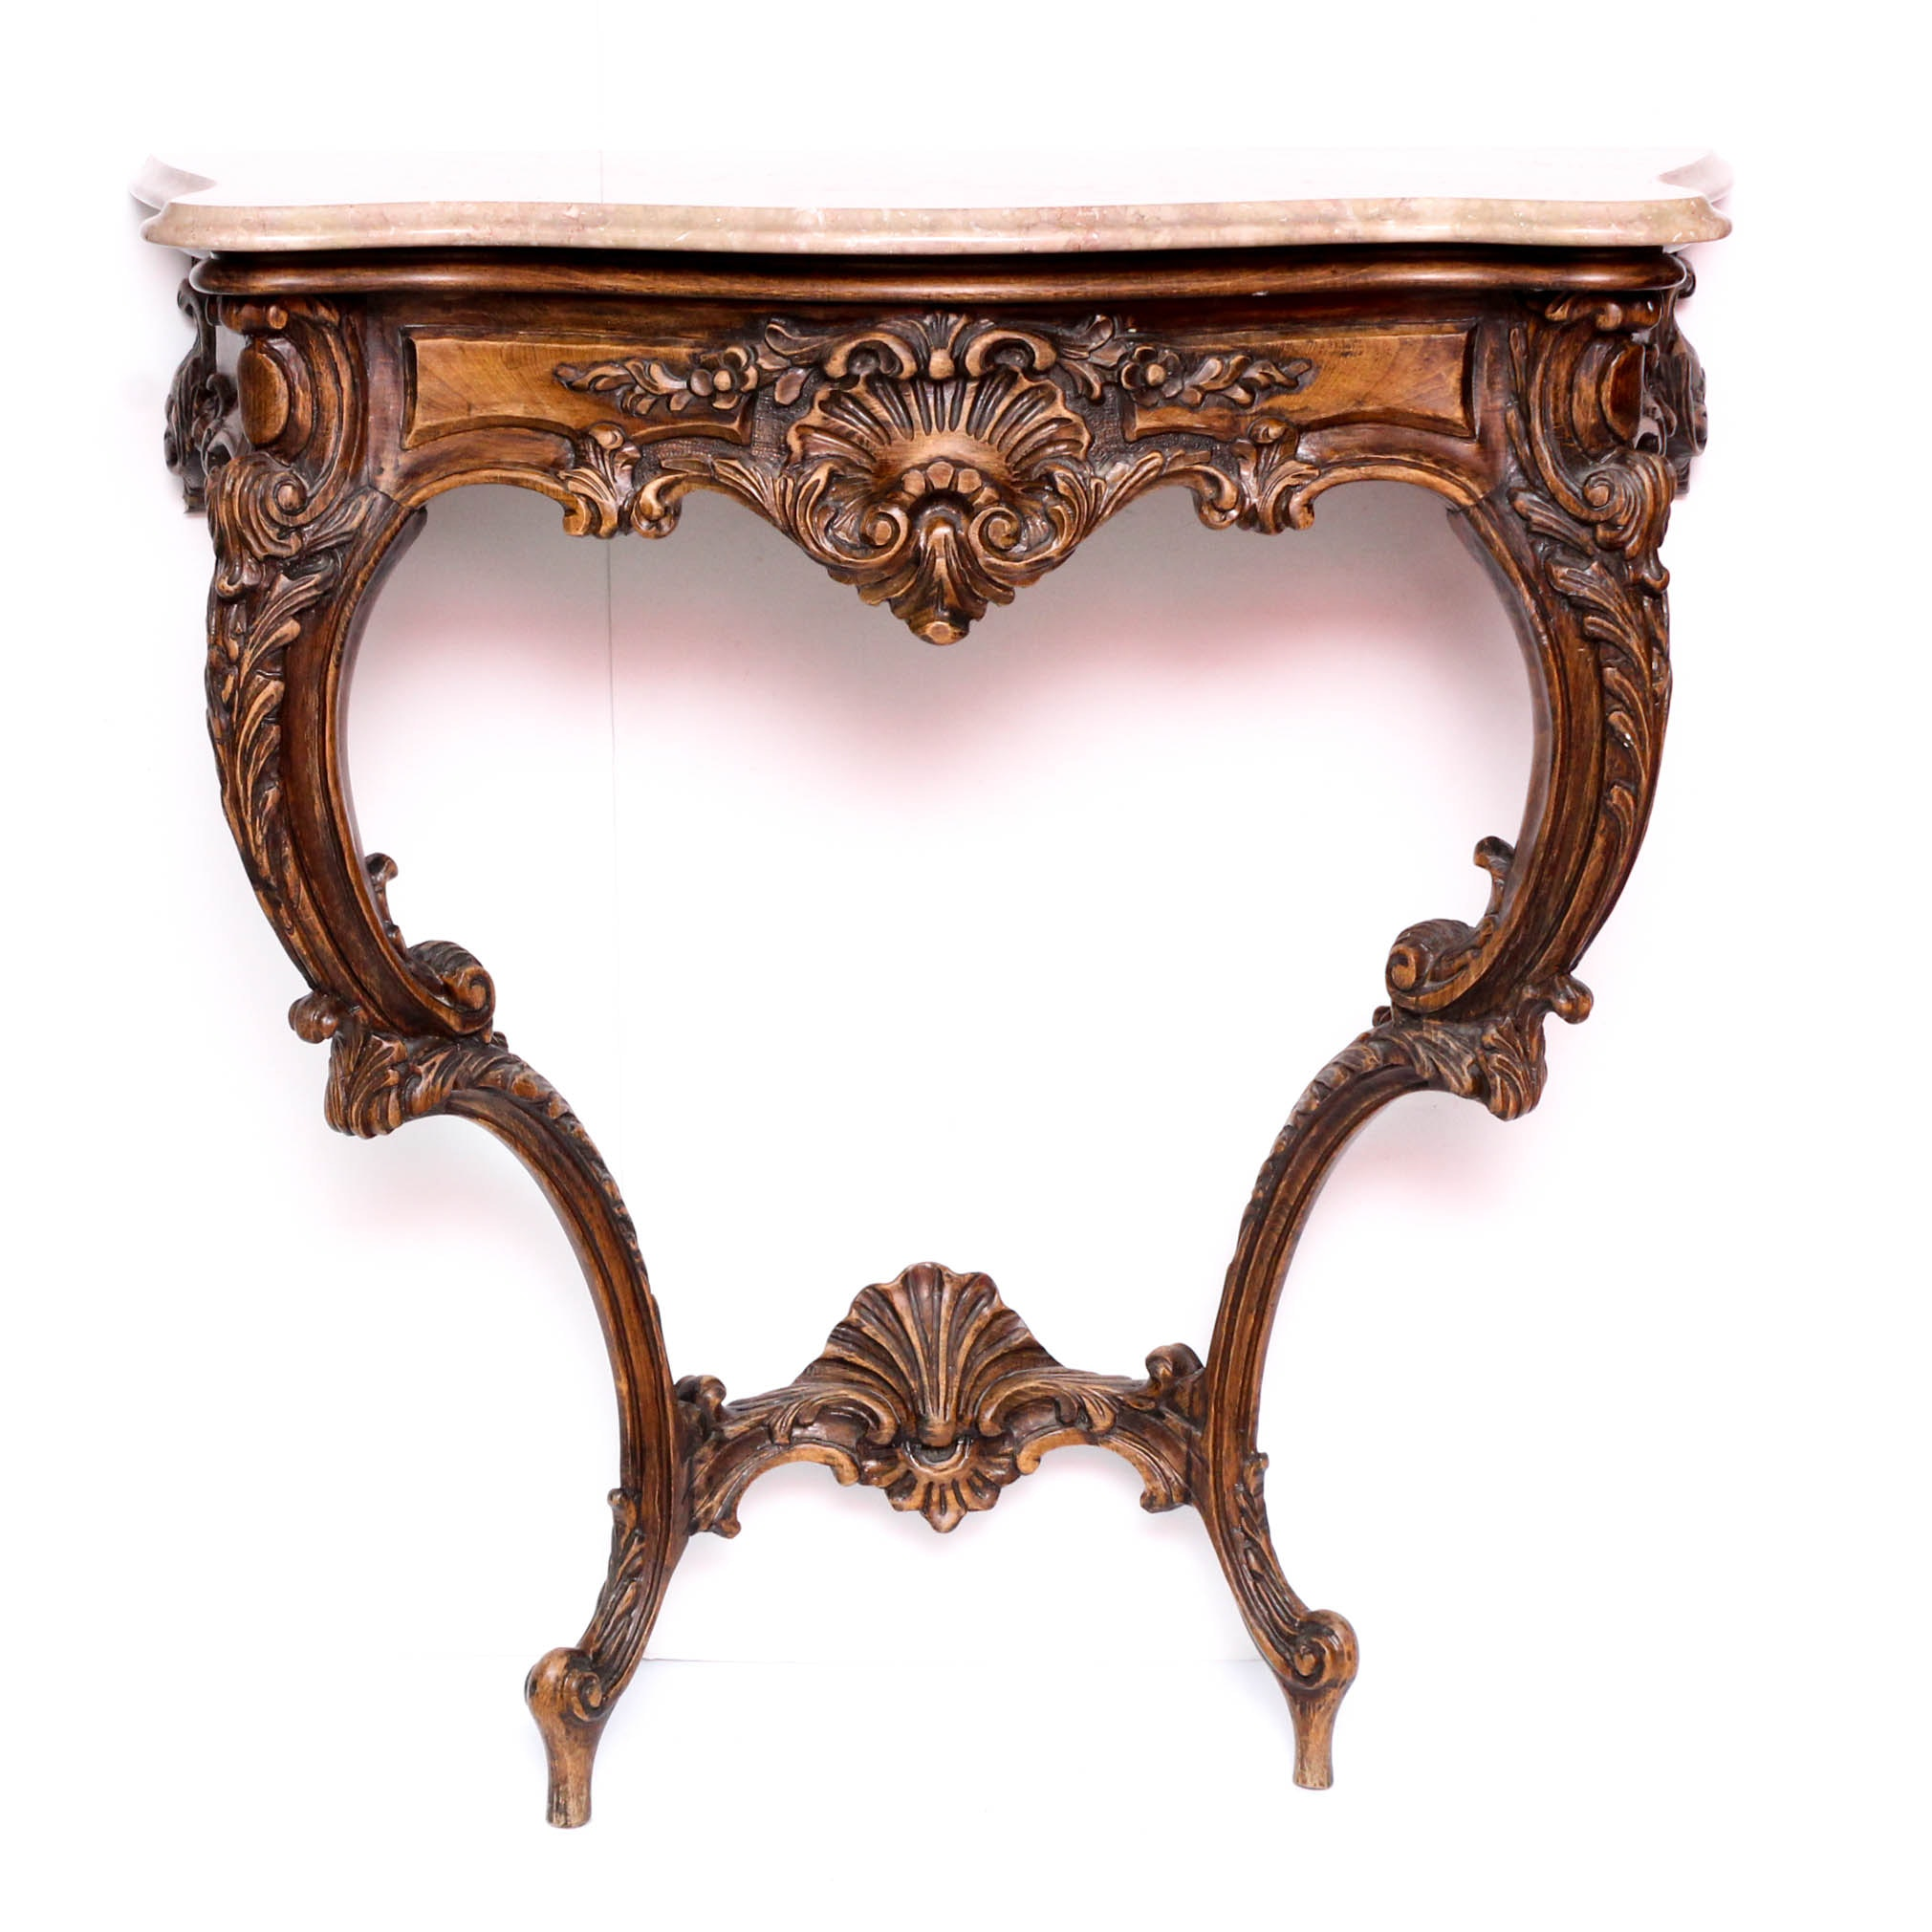 French Provincial Style Marble Top Demilune Hall Table